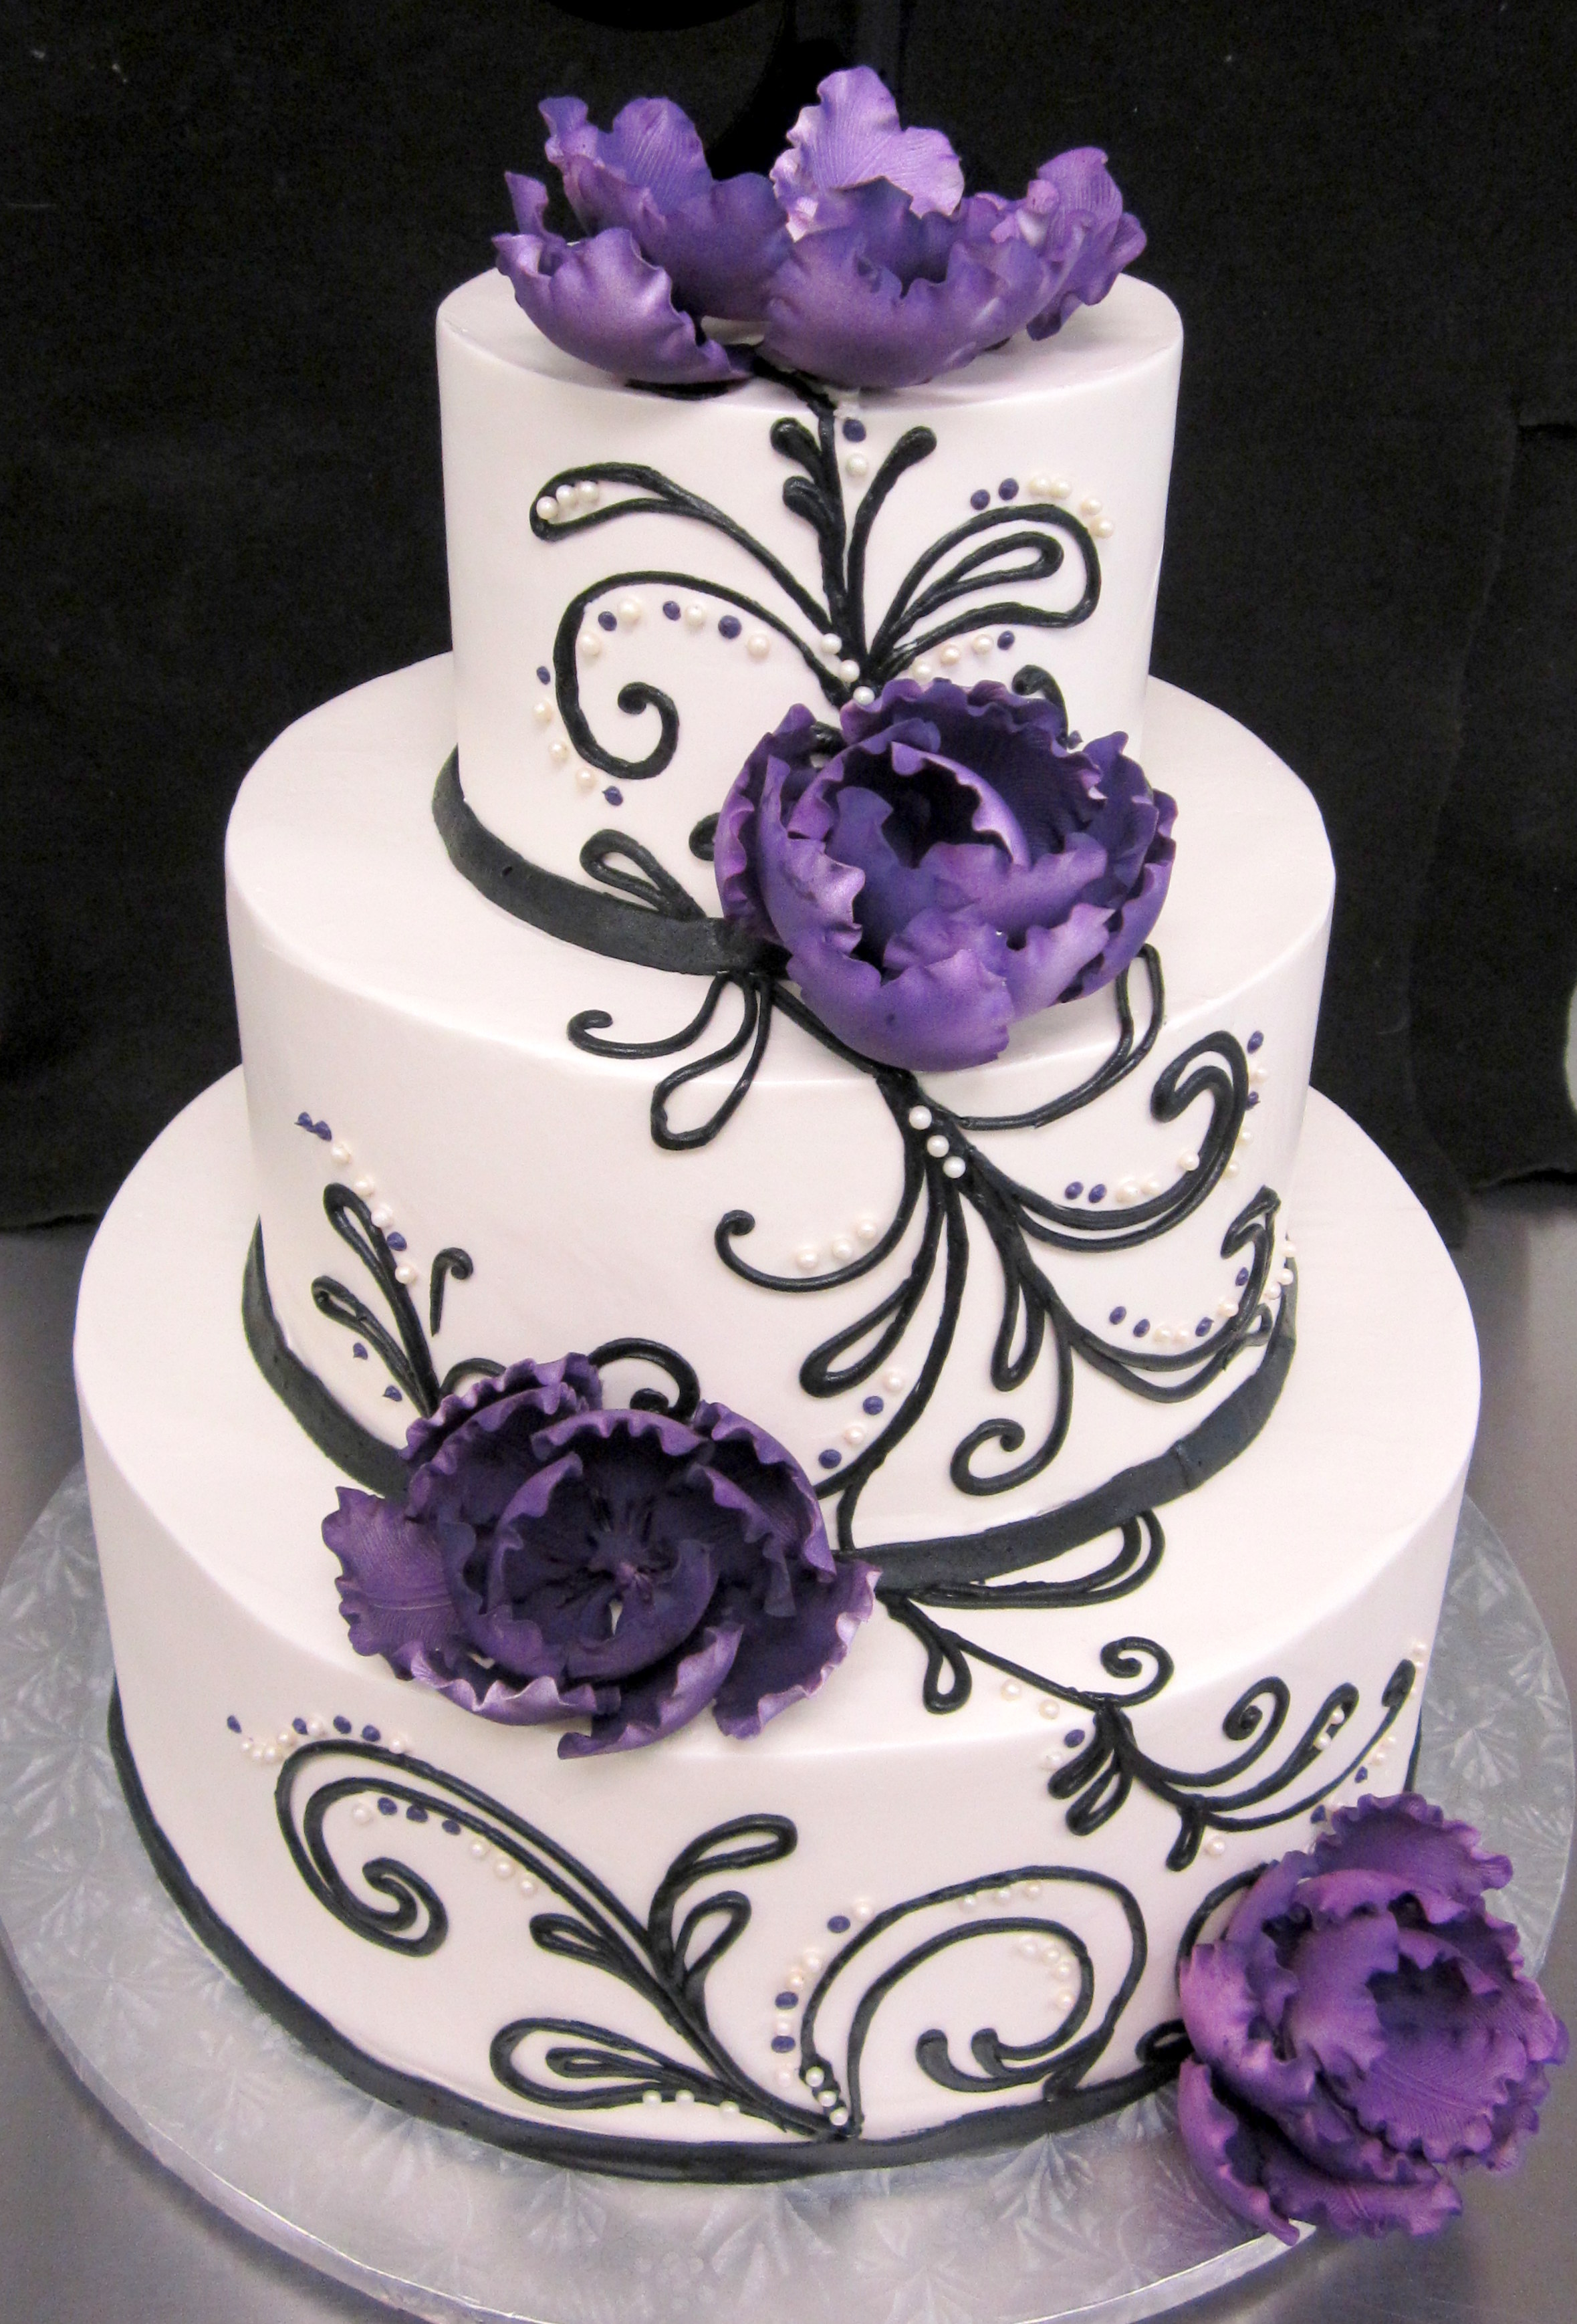 wedding cake-purple peonies black lg wisps.jpg